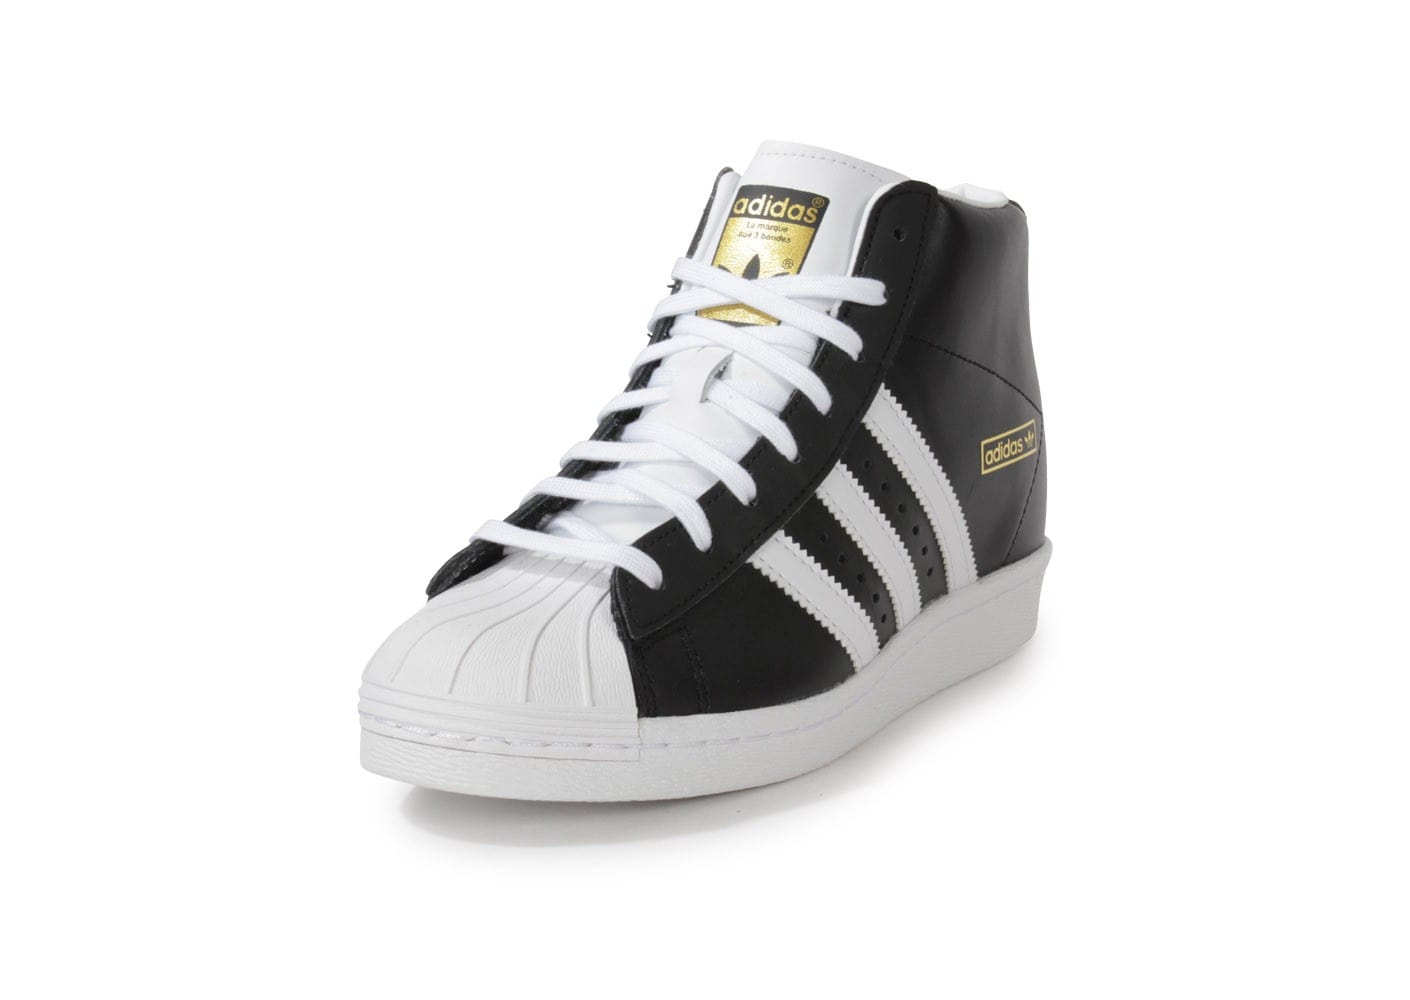 adidas Superstar Up Compensee Noire Chaussures adidas